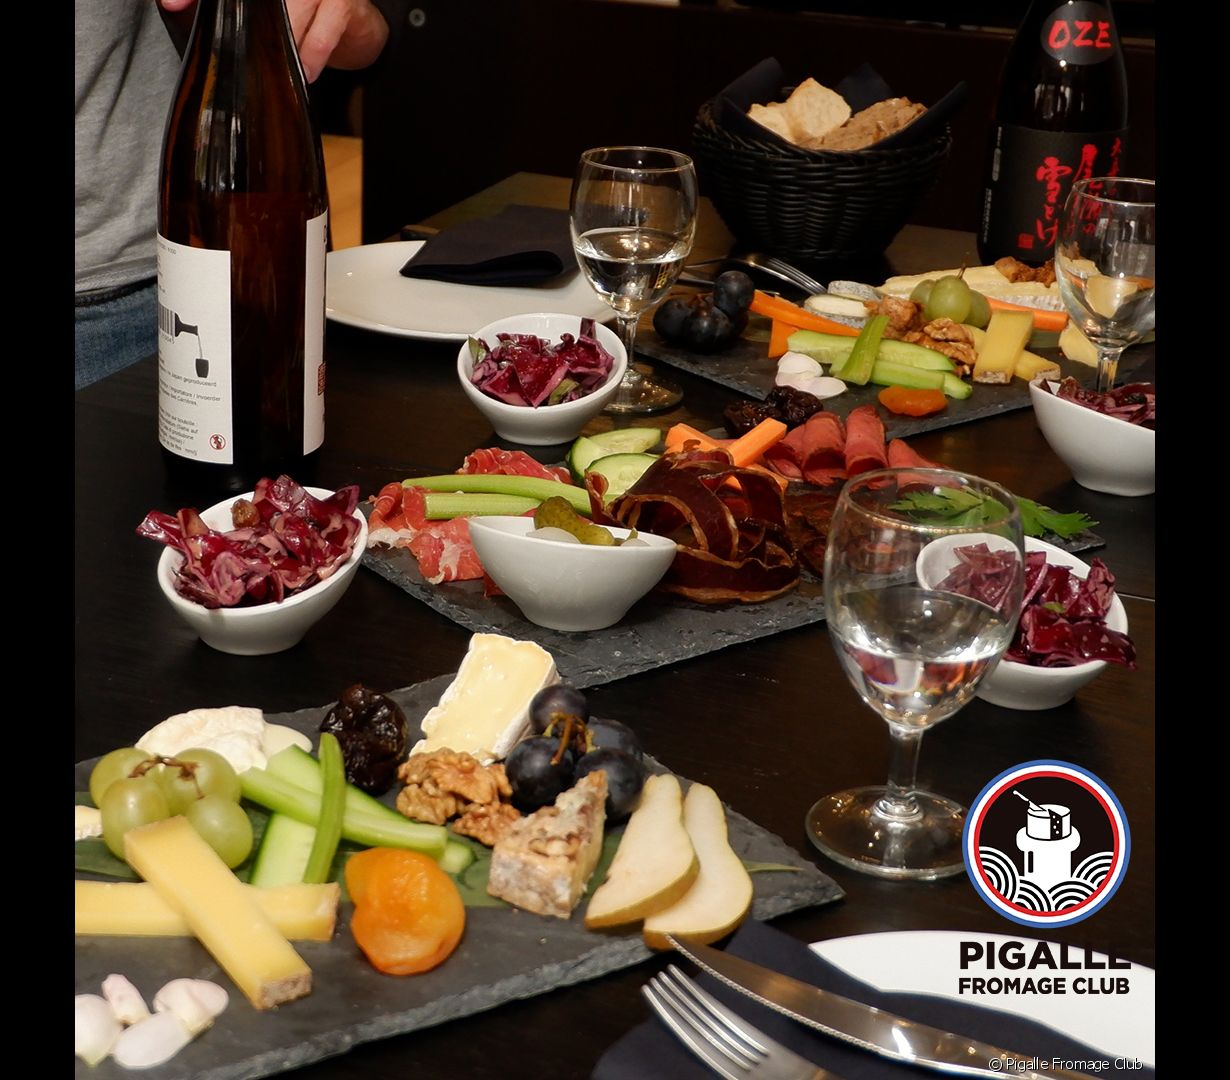 Pigalle Fromage Club, 35 Rue Jean-Baptiste Pigalle, 75009 Paris - Photo 14